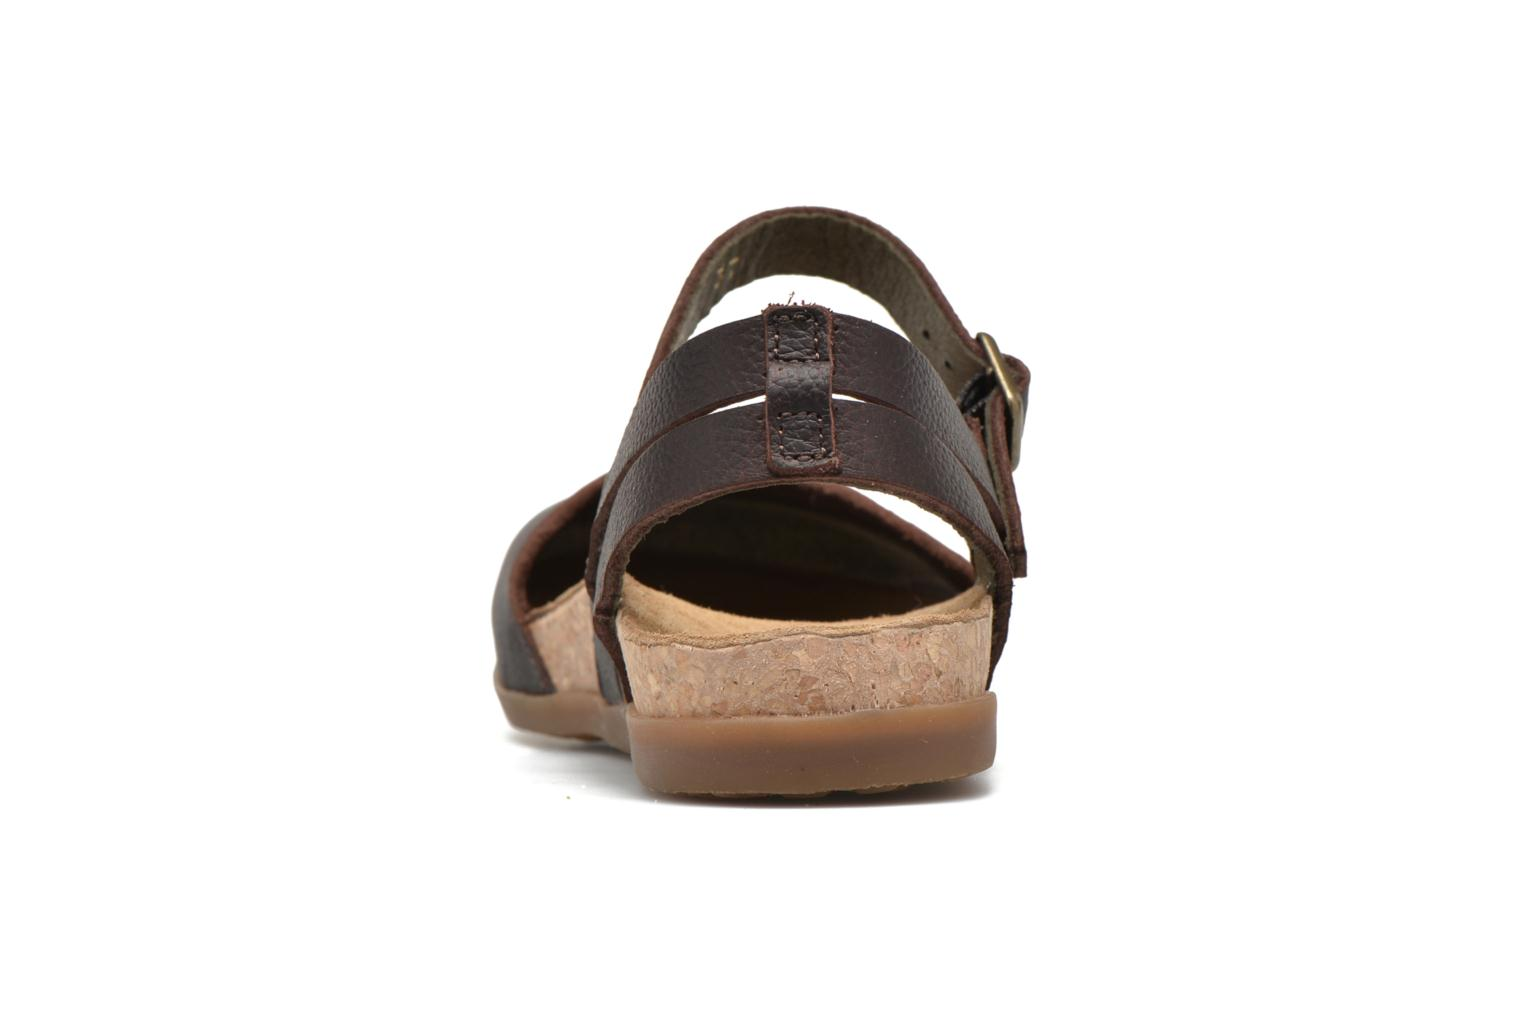 Zumaia NF41 grain brown